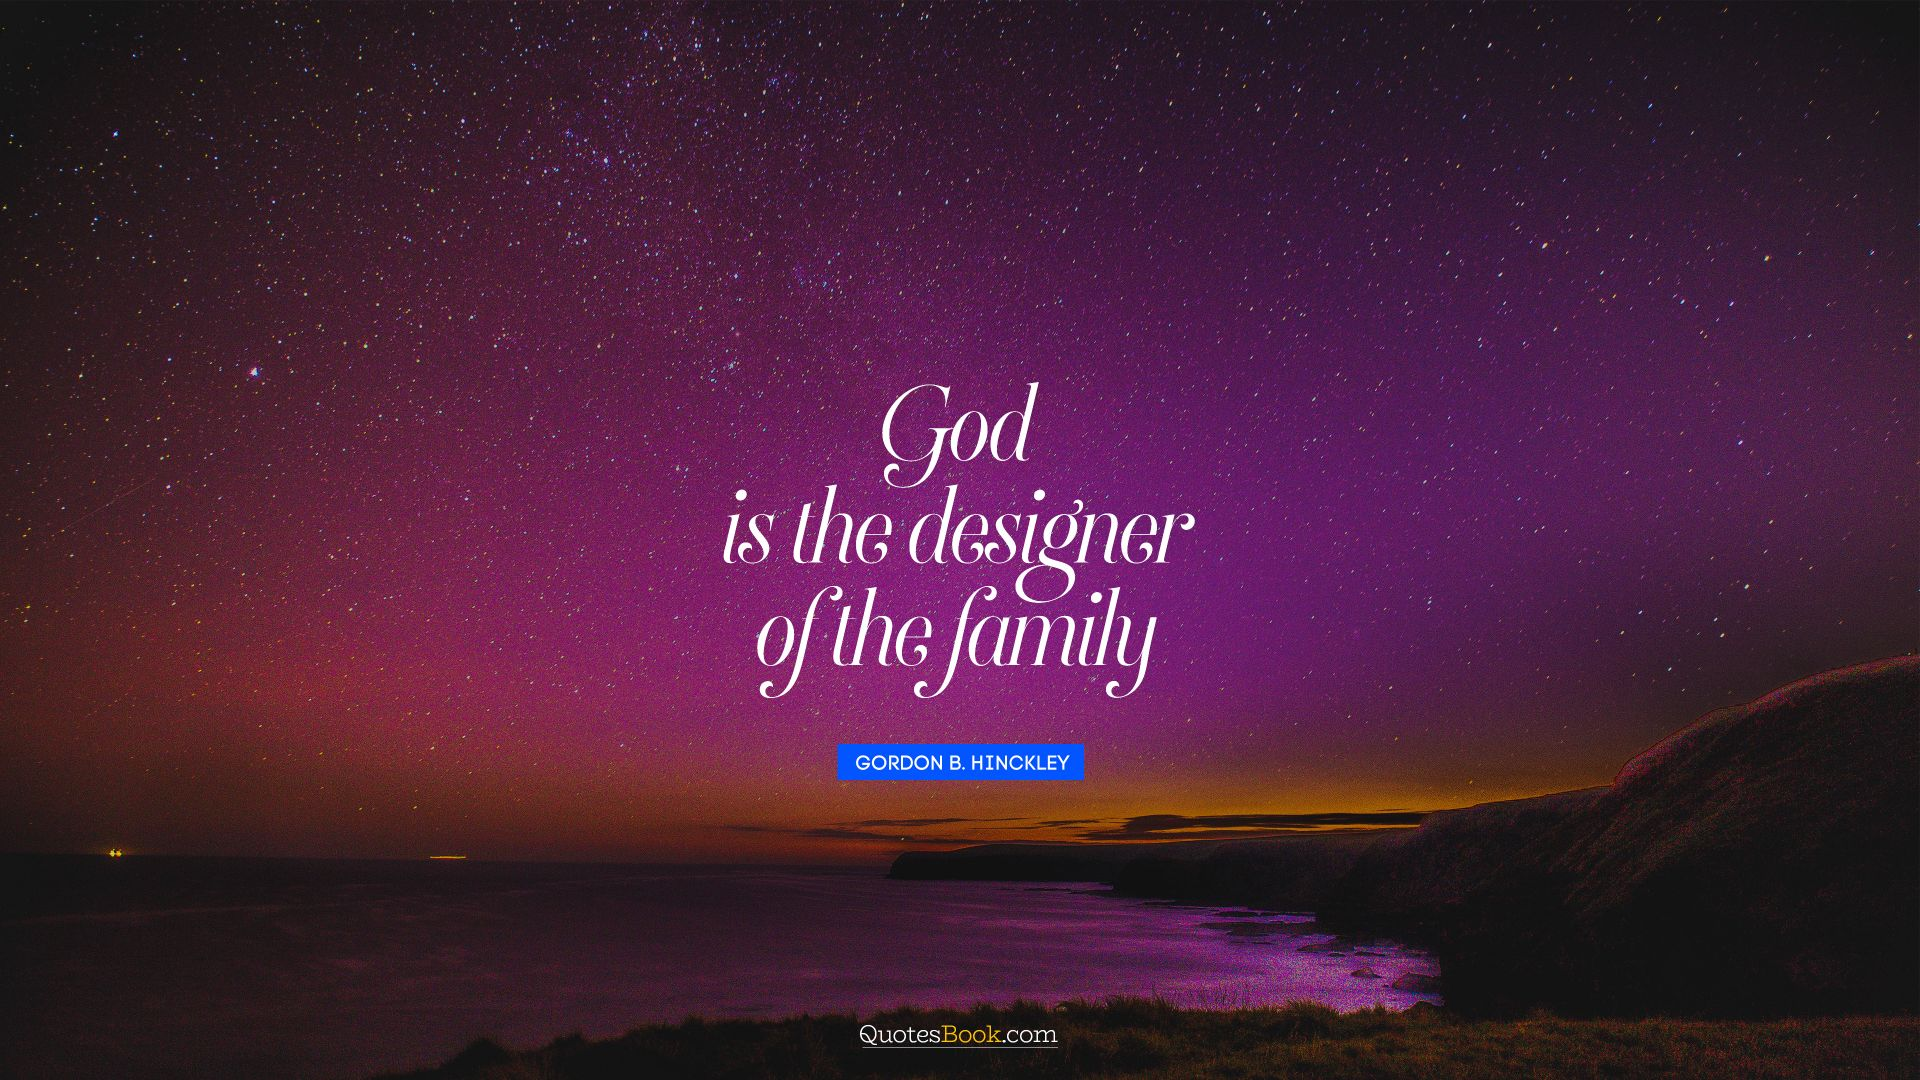 God is the designer of the family. - Quote by Gordon B. Hinckley